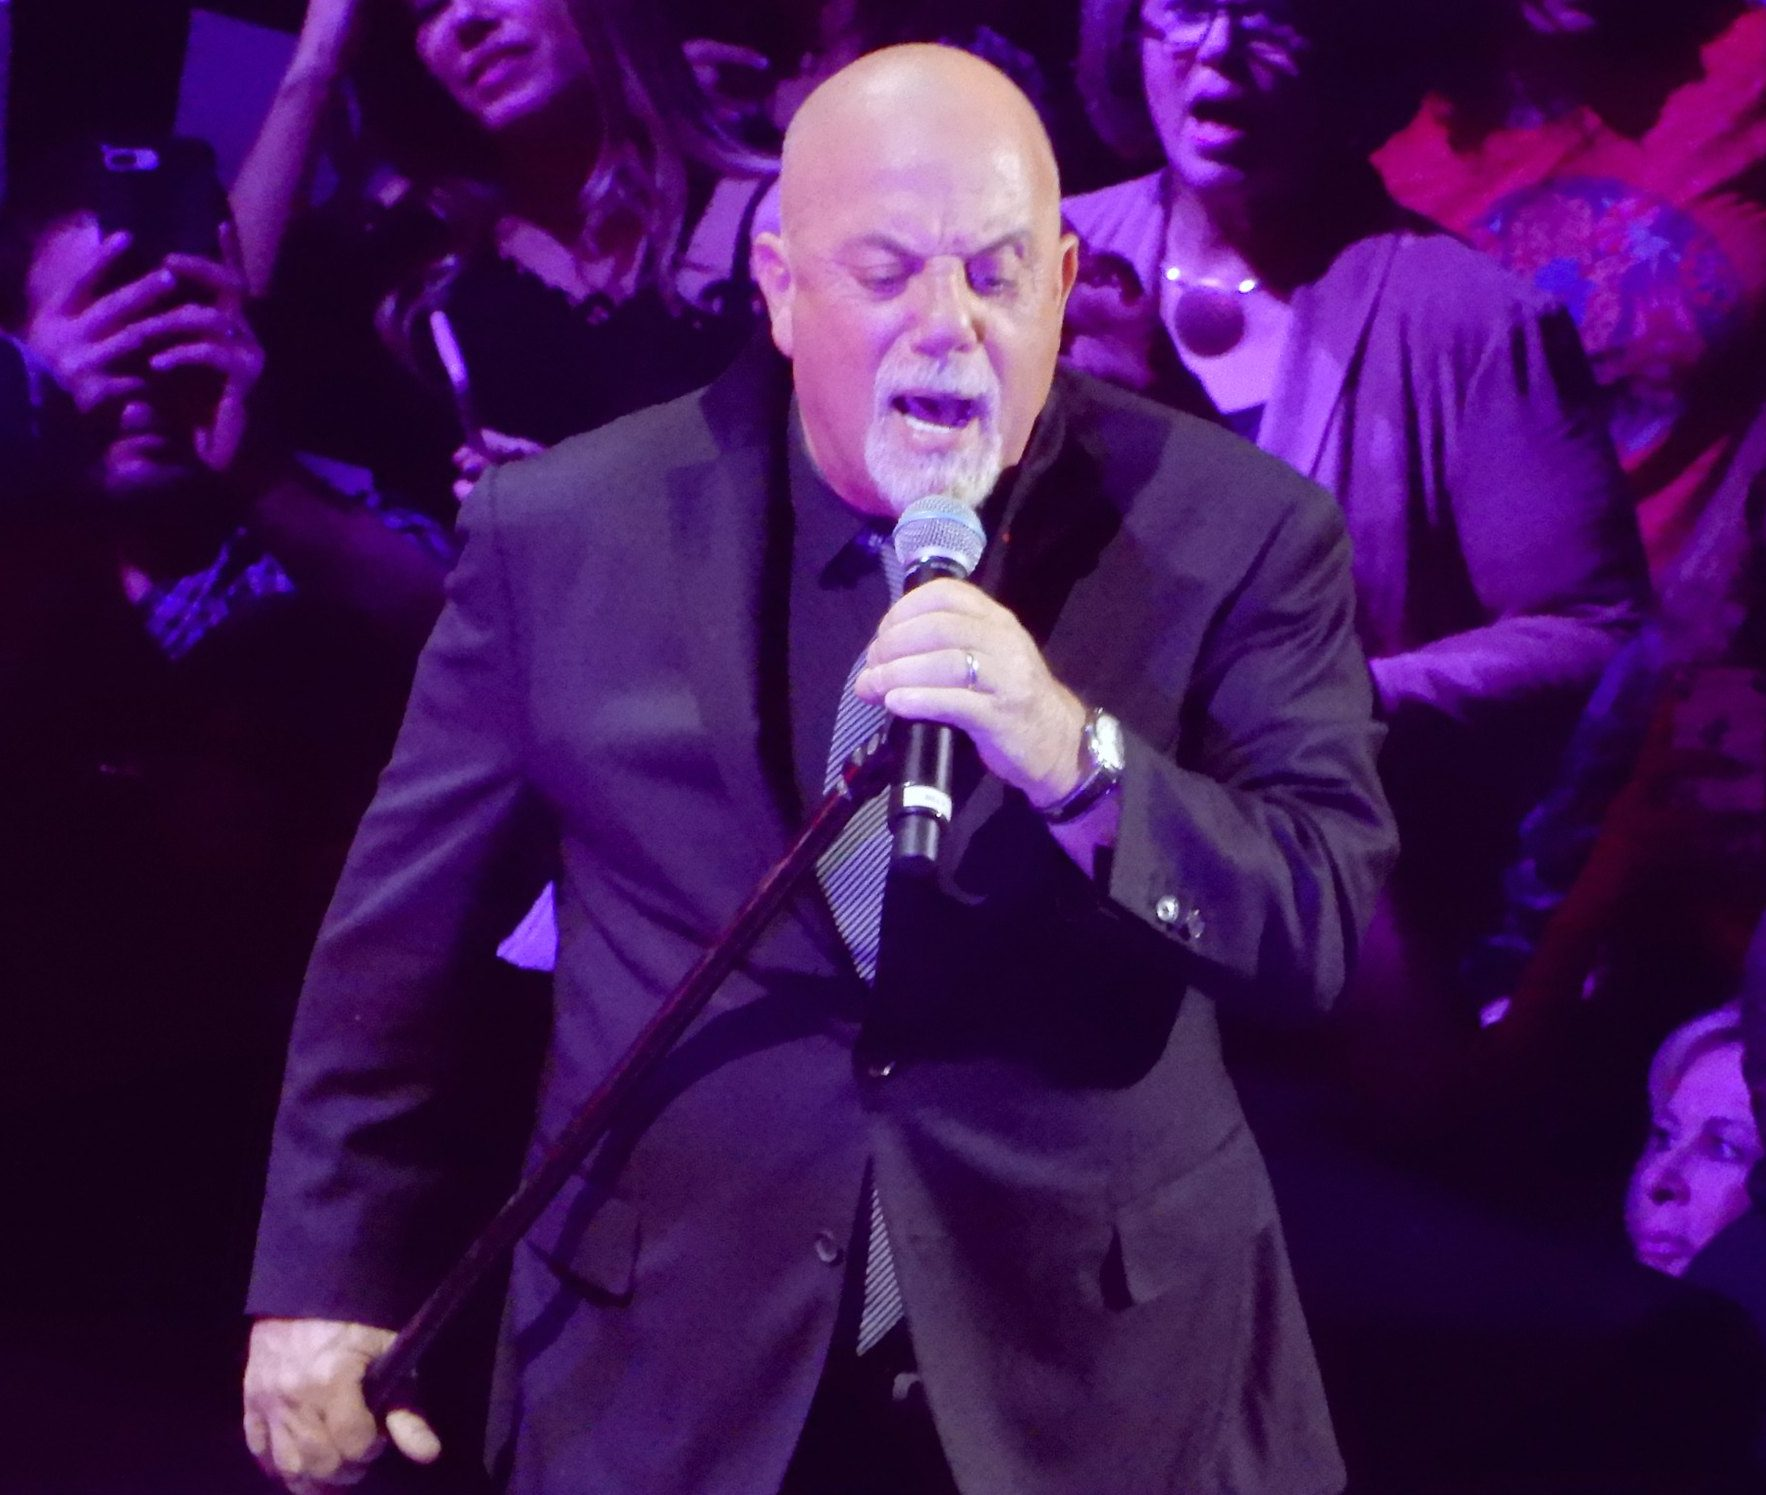 33876851115 2cefe54fcd k e1621426365828 20 Things You Probably Didn't Know About Billy Joel